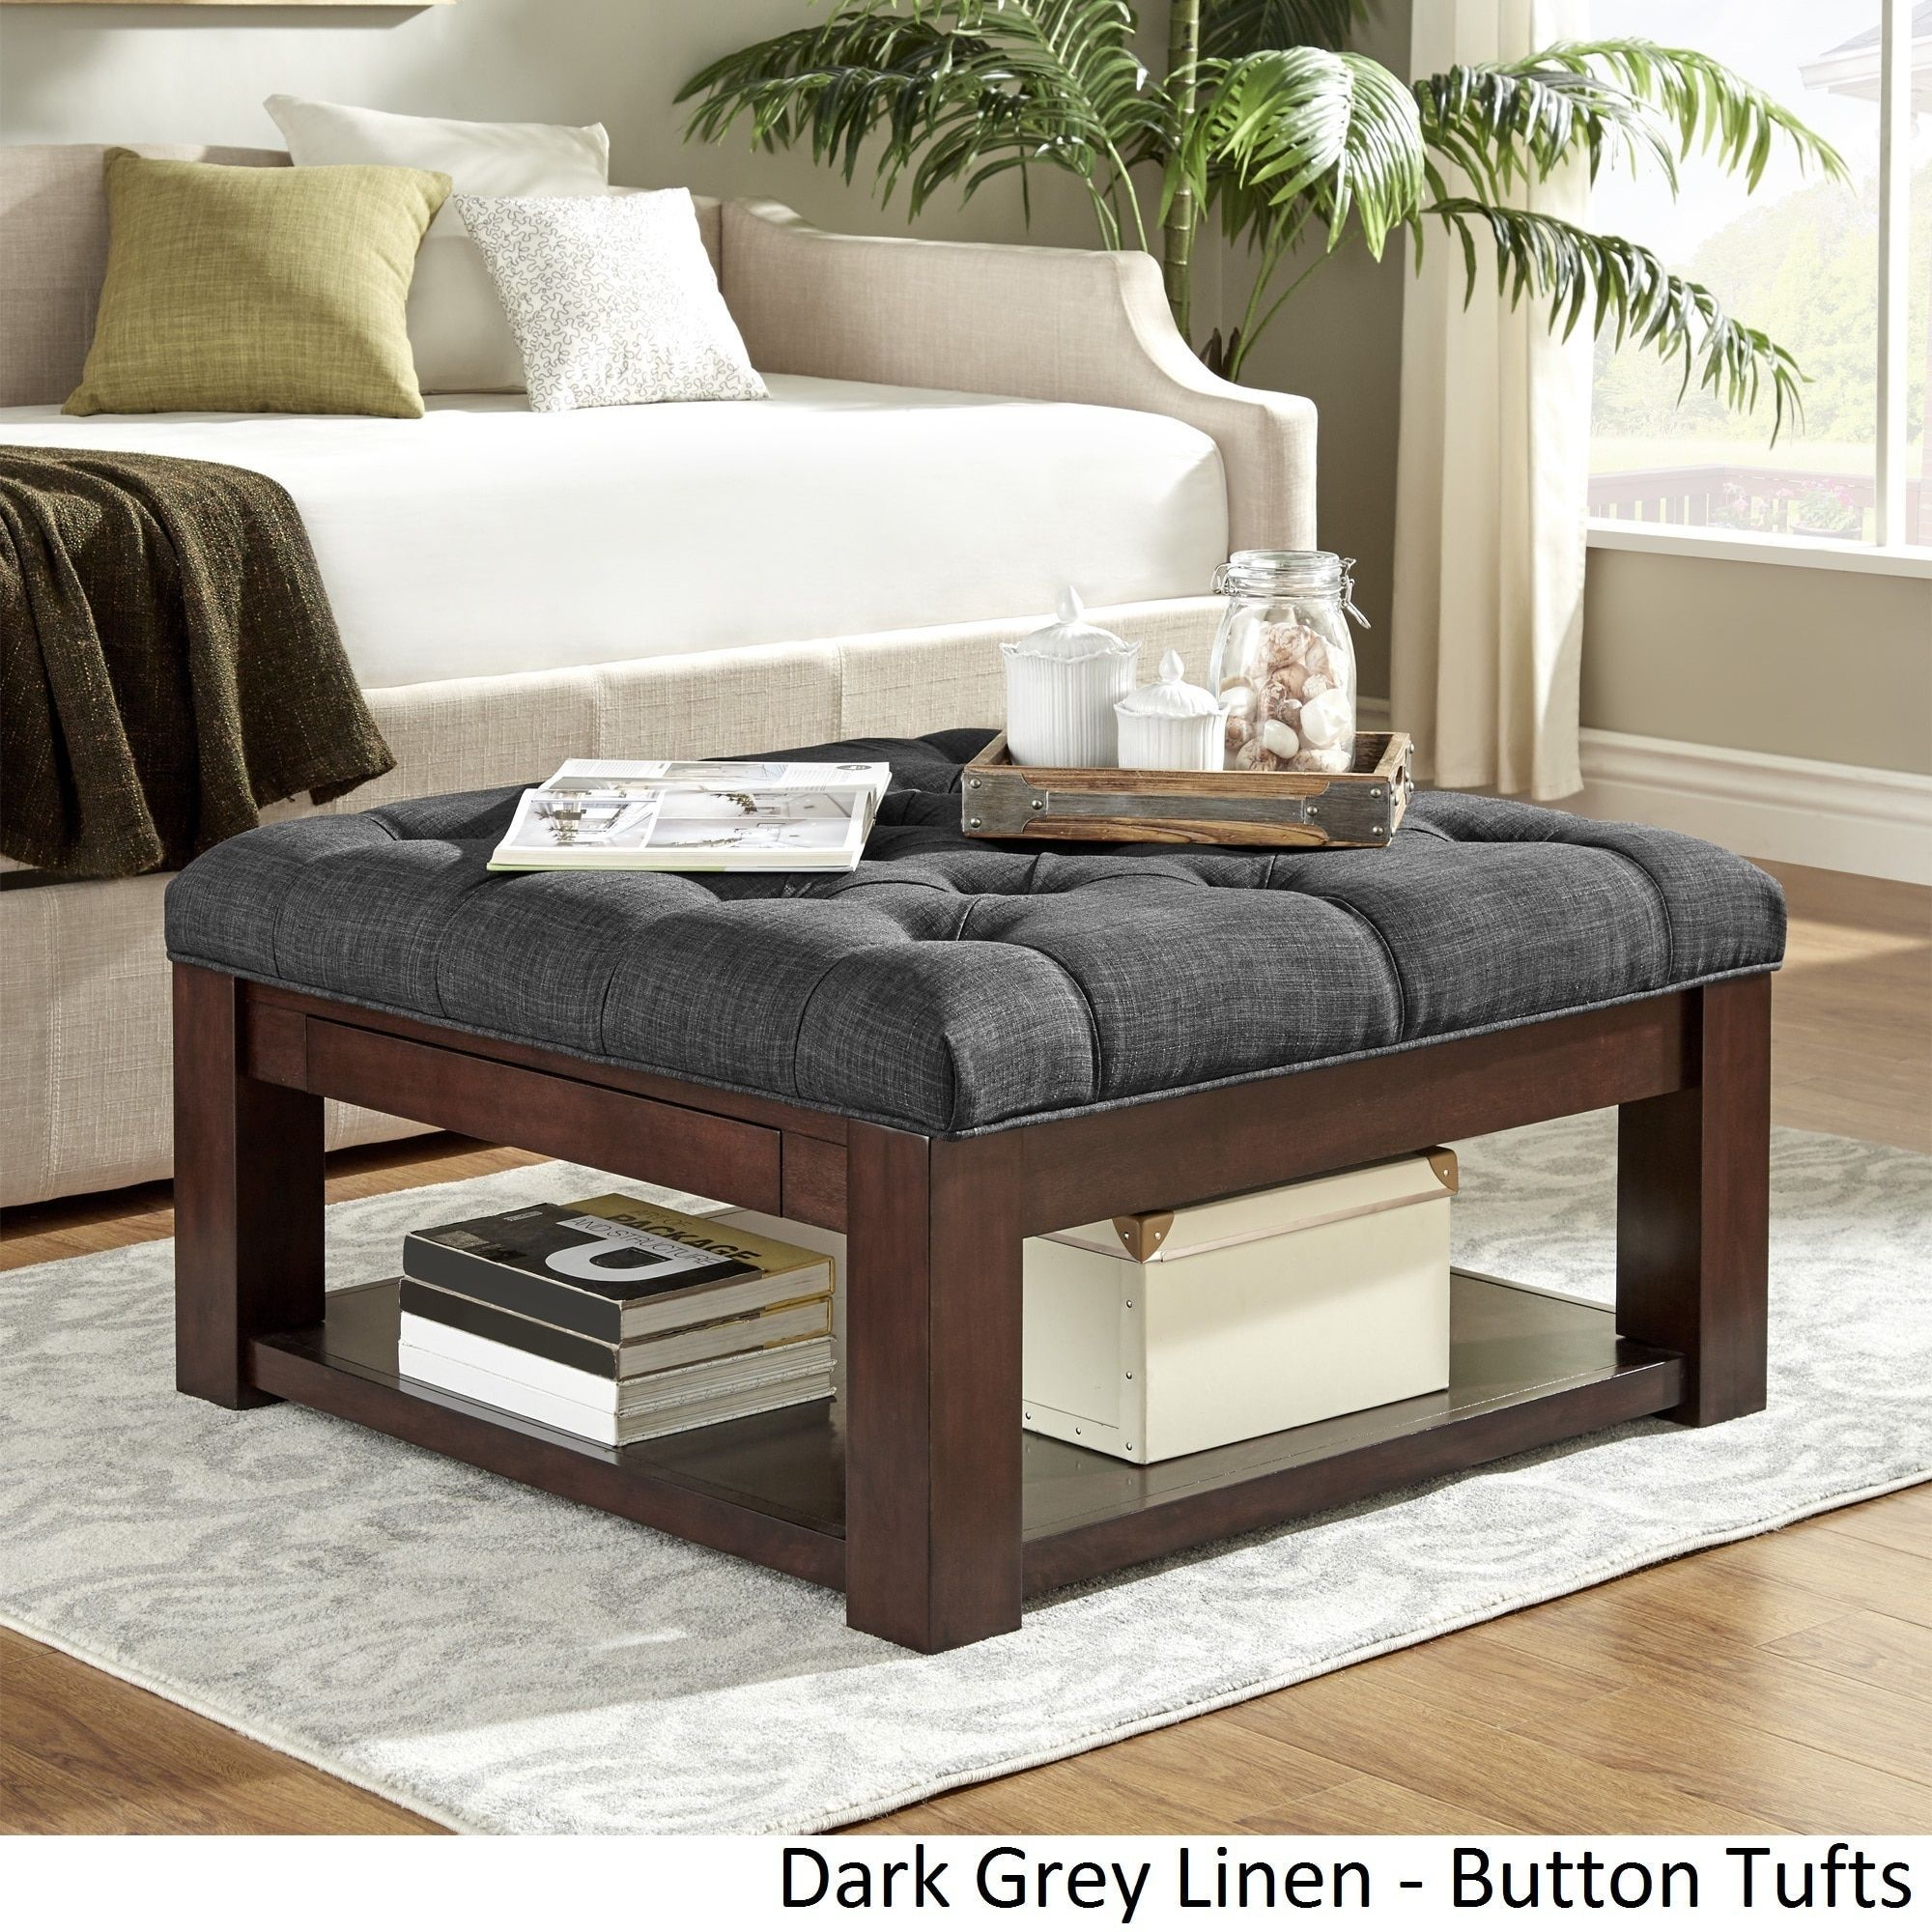 Lennon Espresso Square Storage Ottoman Coffee Table By INSPIRE Q Classic  ([Dark Grey Linen